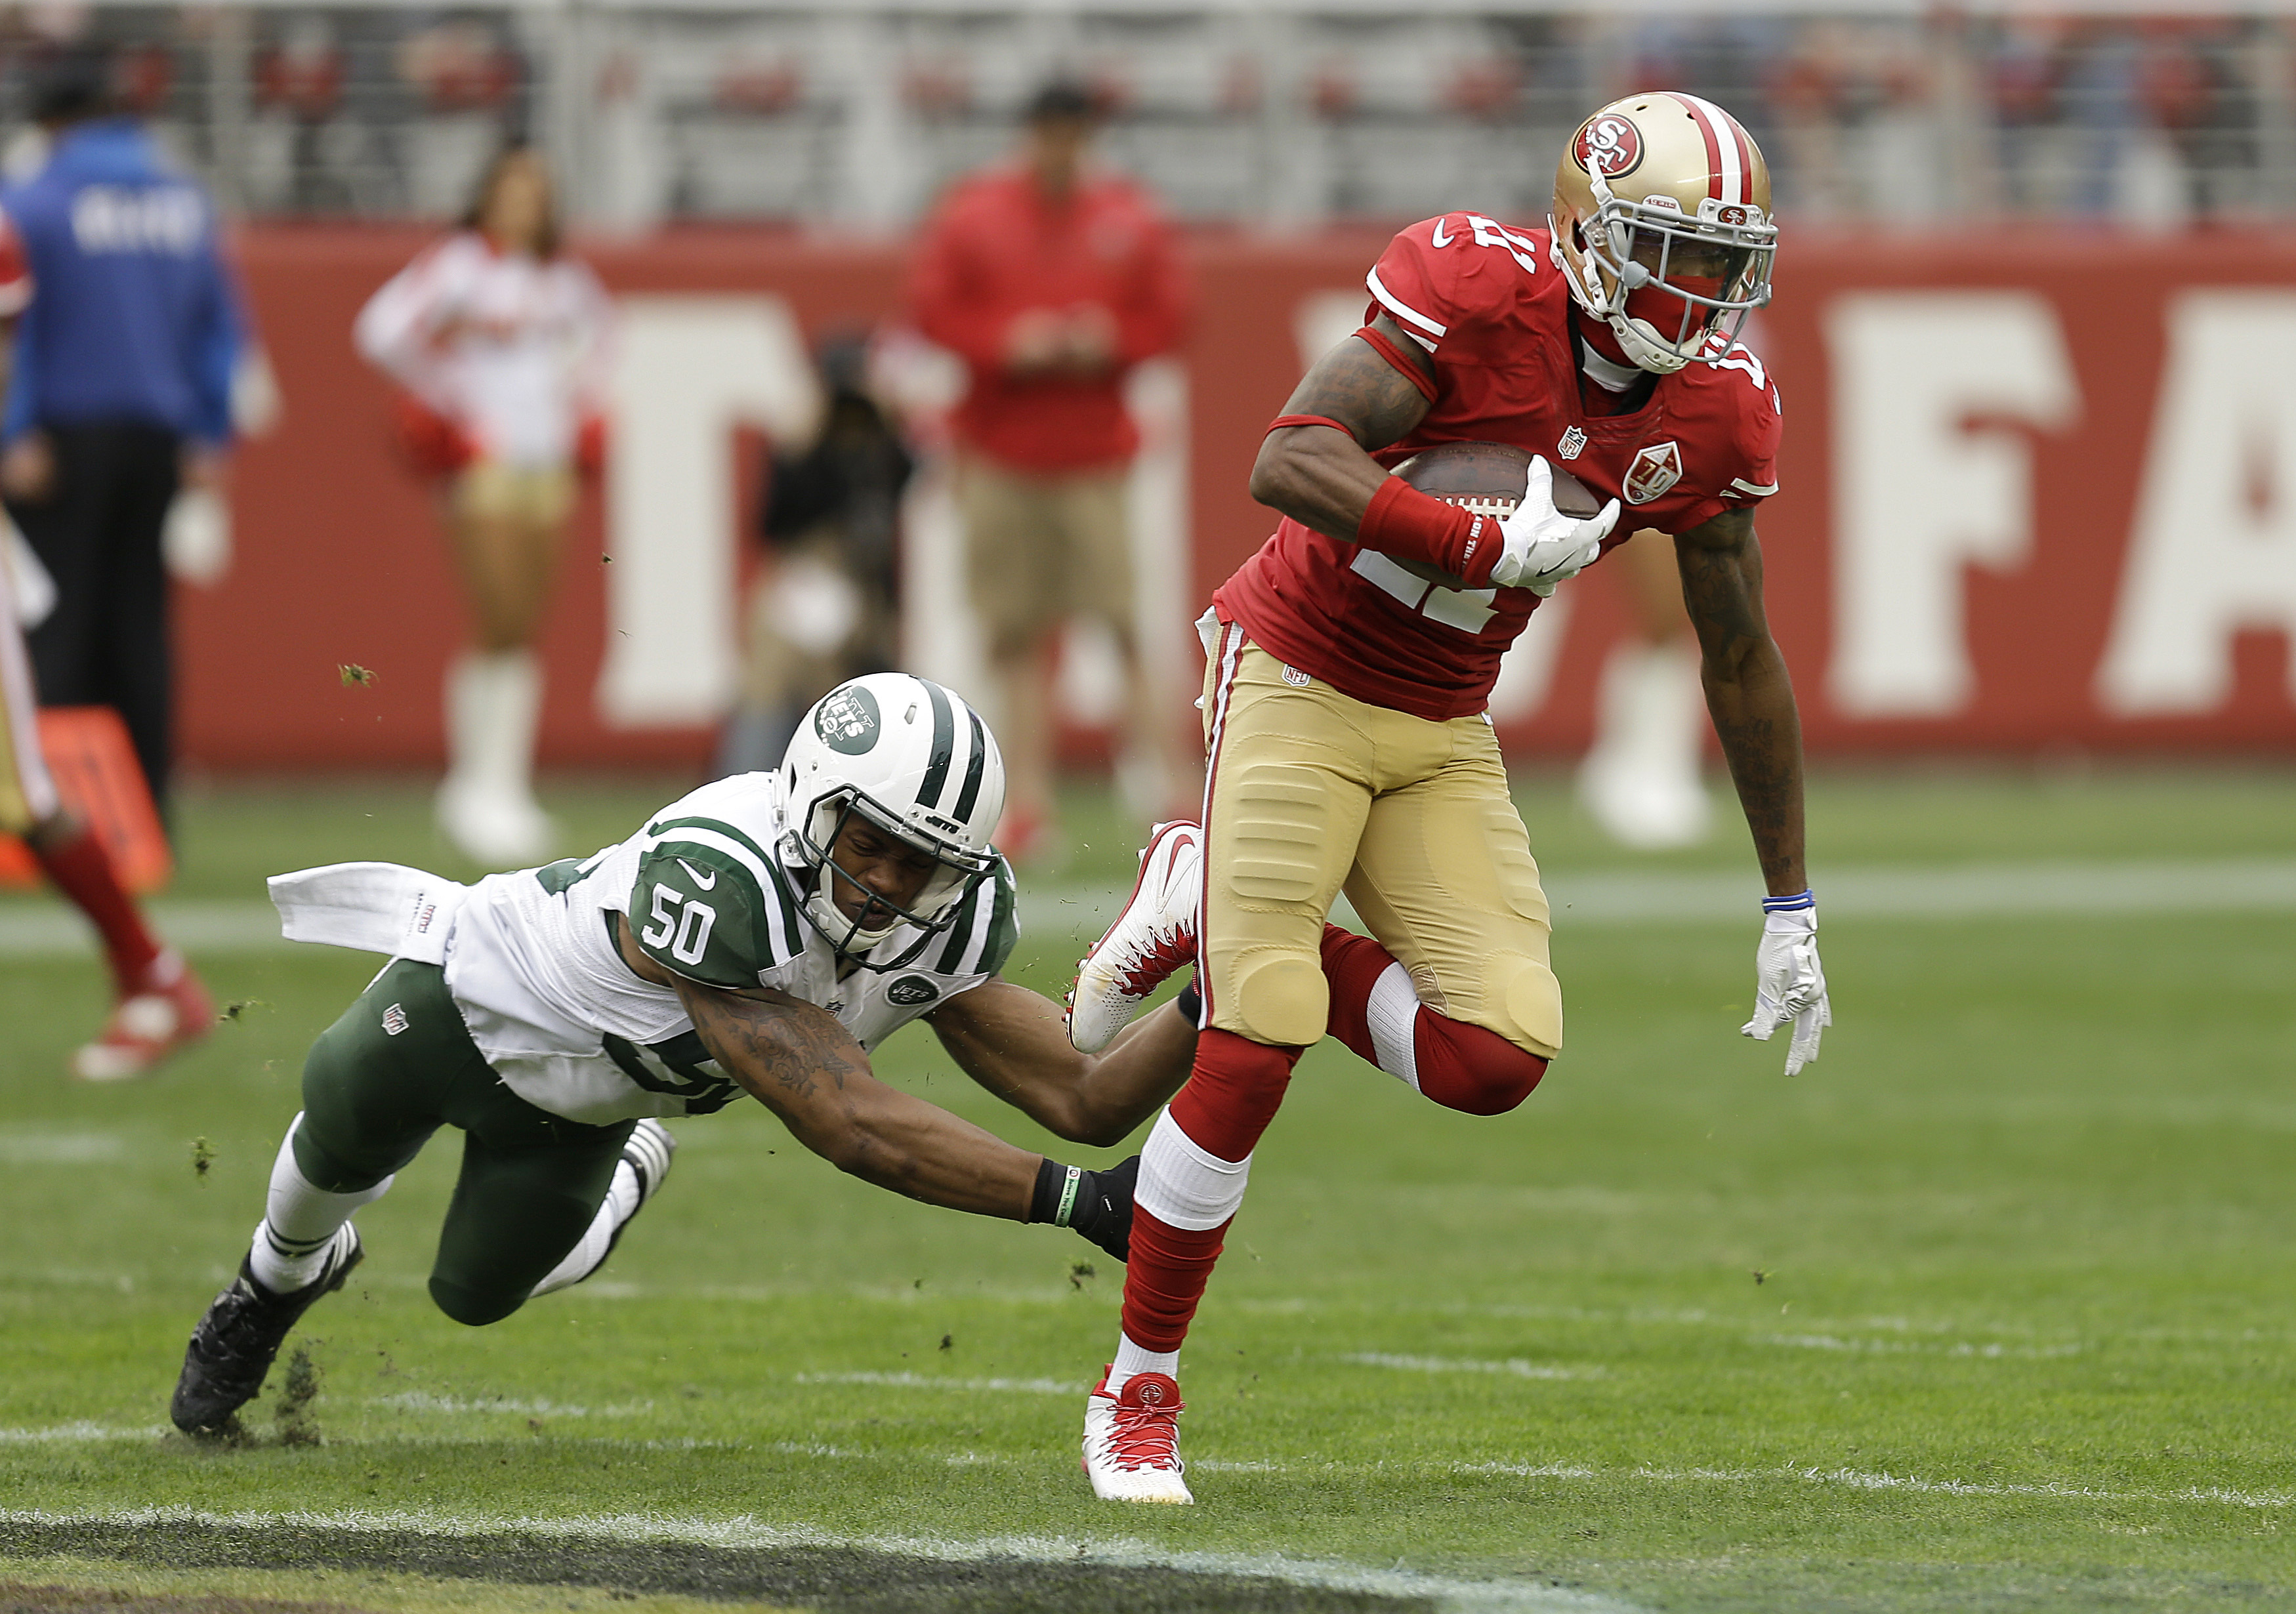 San Francisco 49ers wide receiver Quinton Patton (11) runs from New York Jets outside linebacker Darron Lee (50) during the first half of an NFL football game in Santa Clara, Calif., Sunday, Dec. 11, 2016. (AP Photo/Ben Margot)